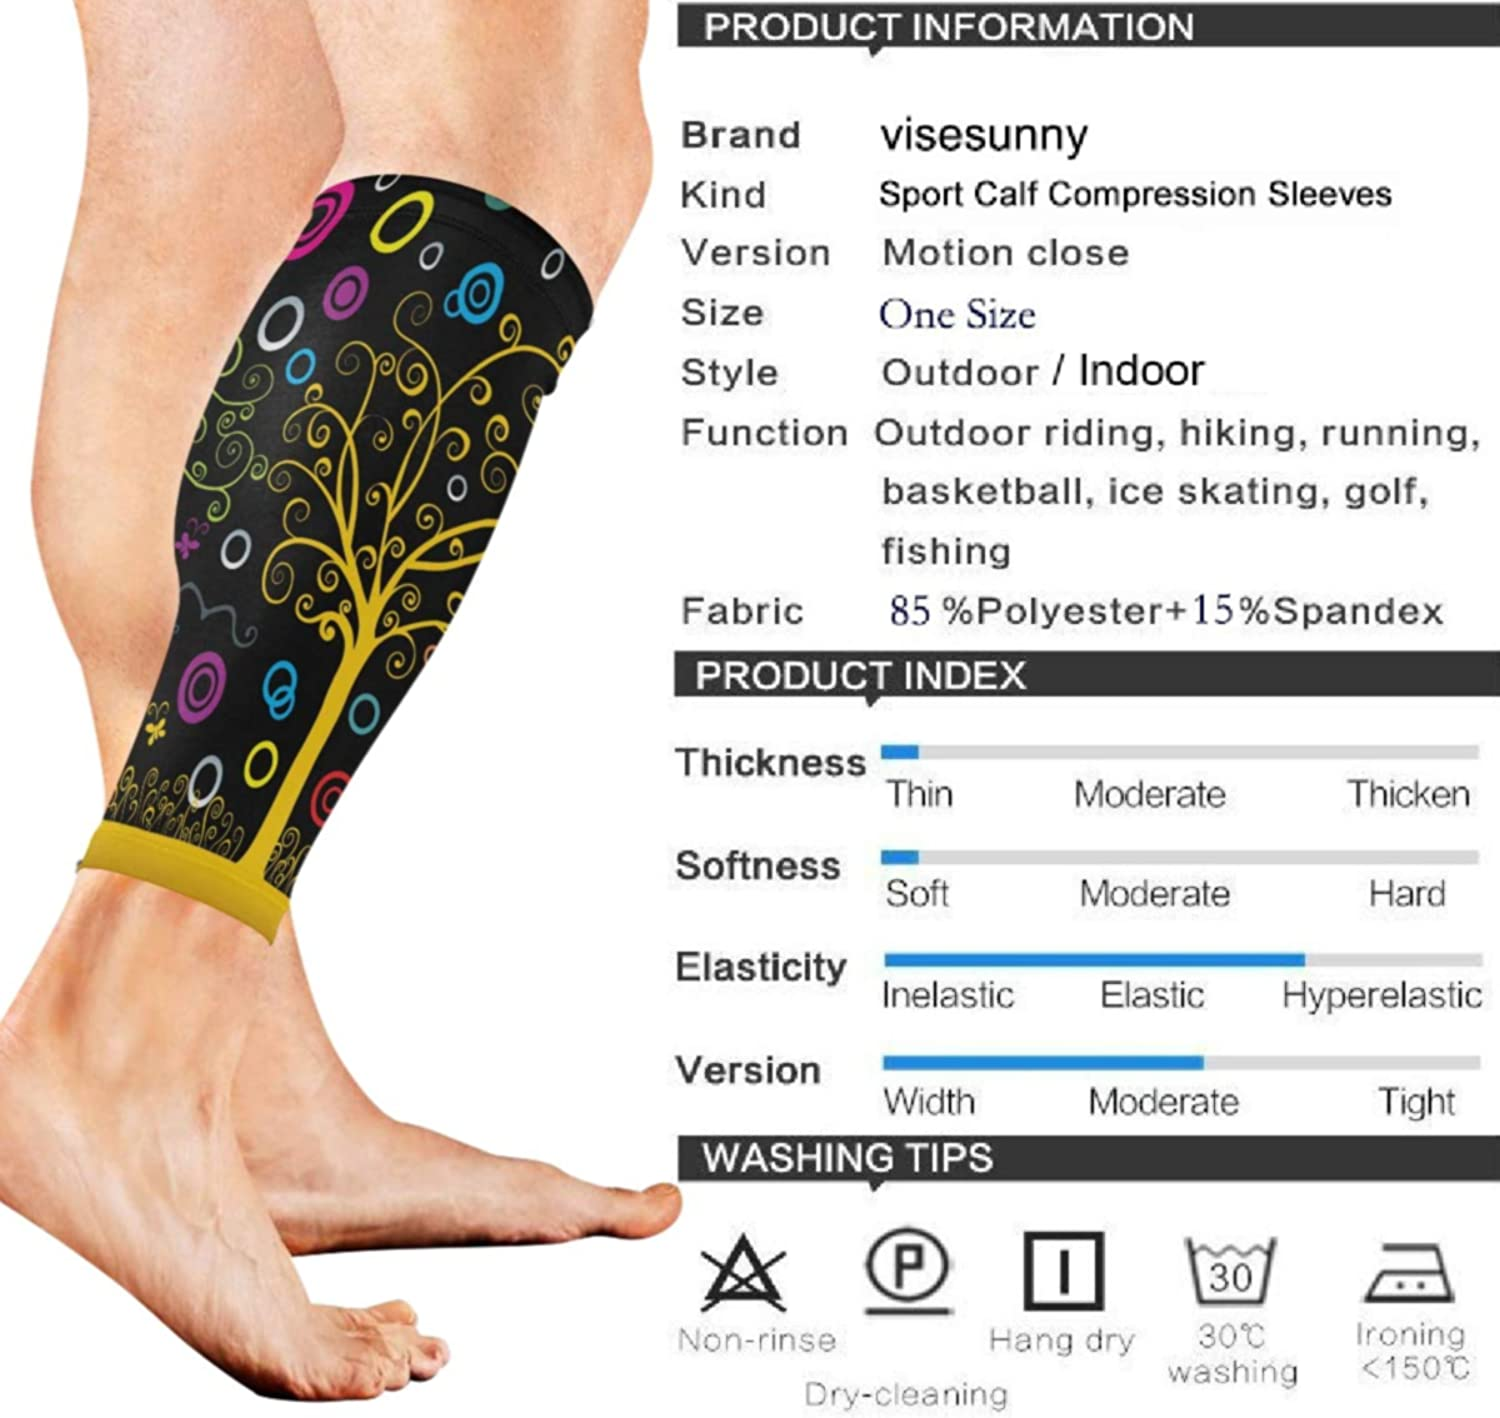 visesunny Colorful Dream Landscape Raster Sports Calf Support Sleeves for Muscle Pain Relief, Improved Circulation Compression Effective Support for Running,Workout,Recovery(1 Pair)